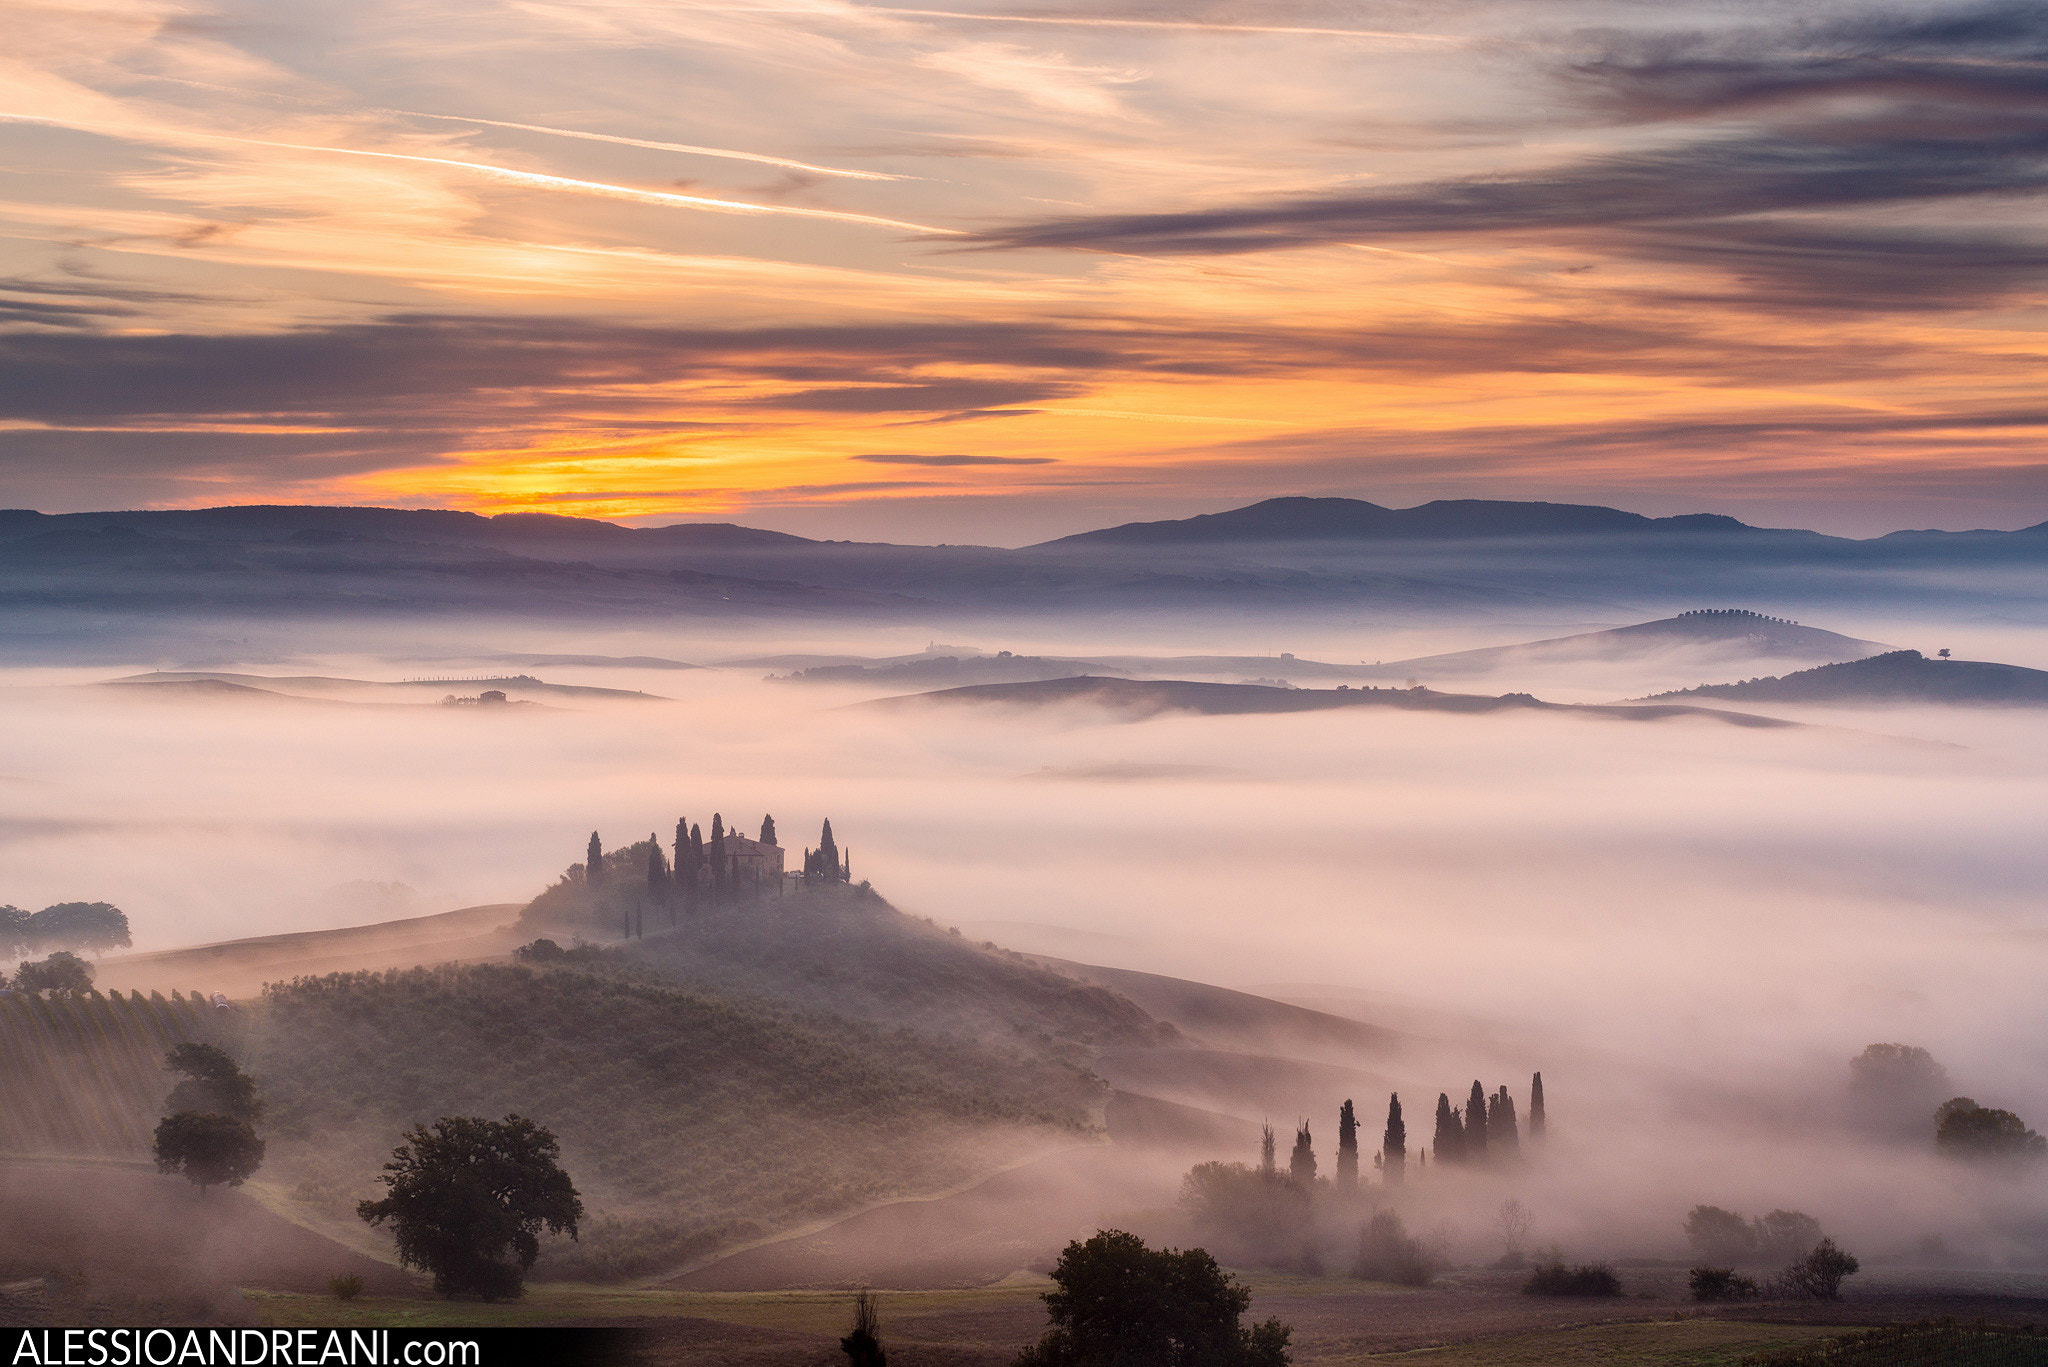 Photograph In the misty Tuscany by Alessio Andreani on 500px